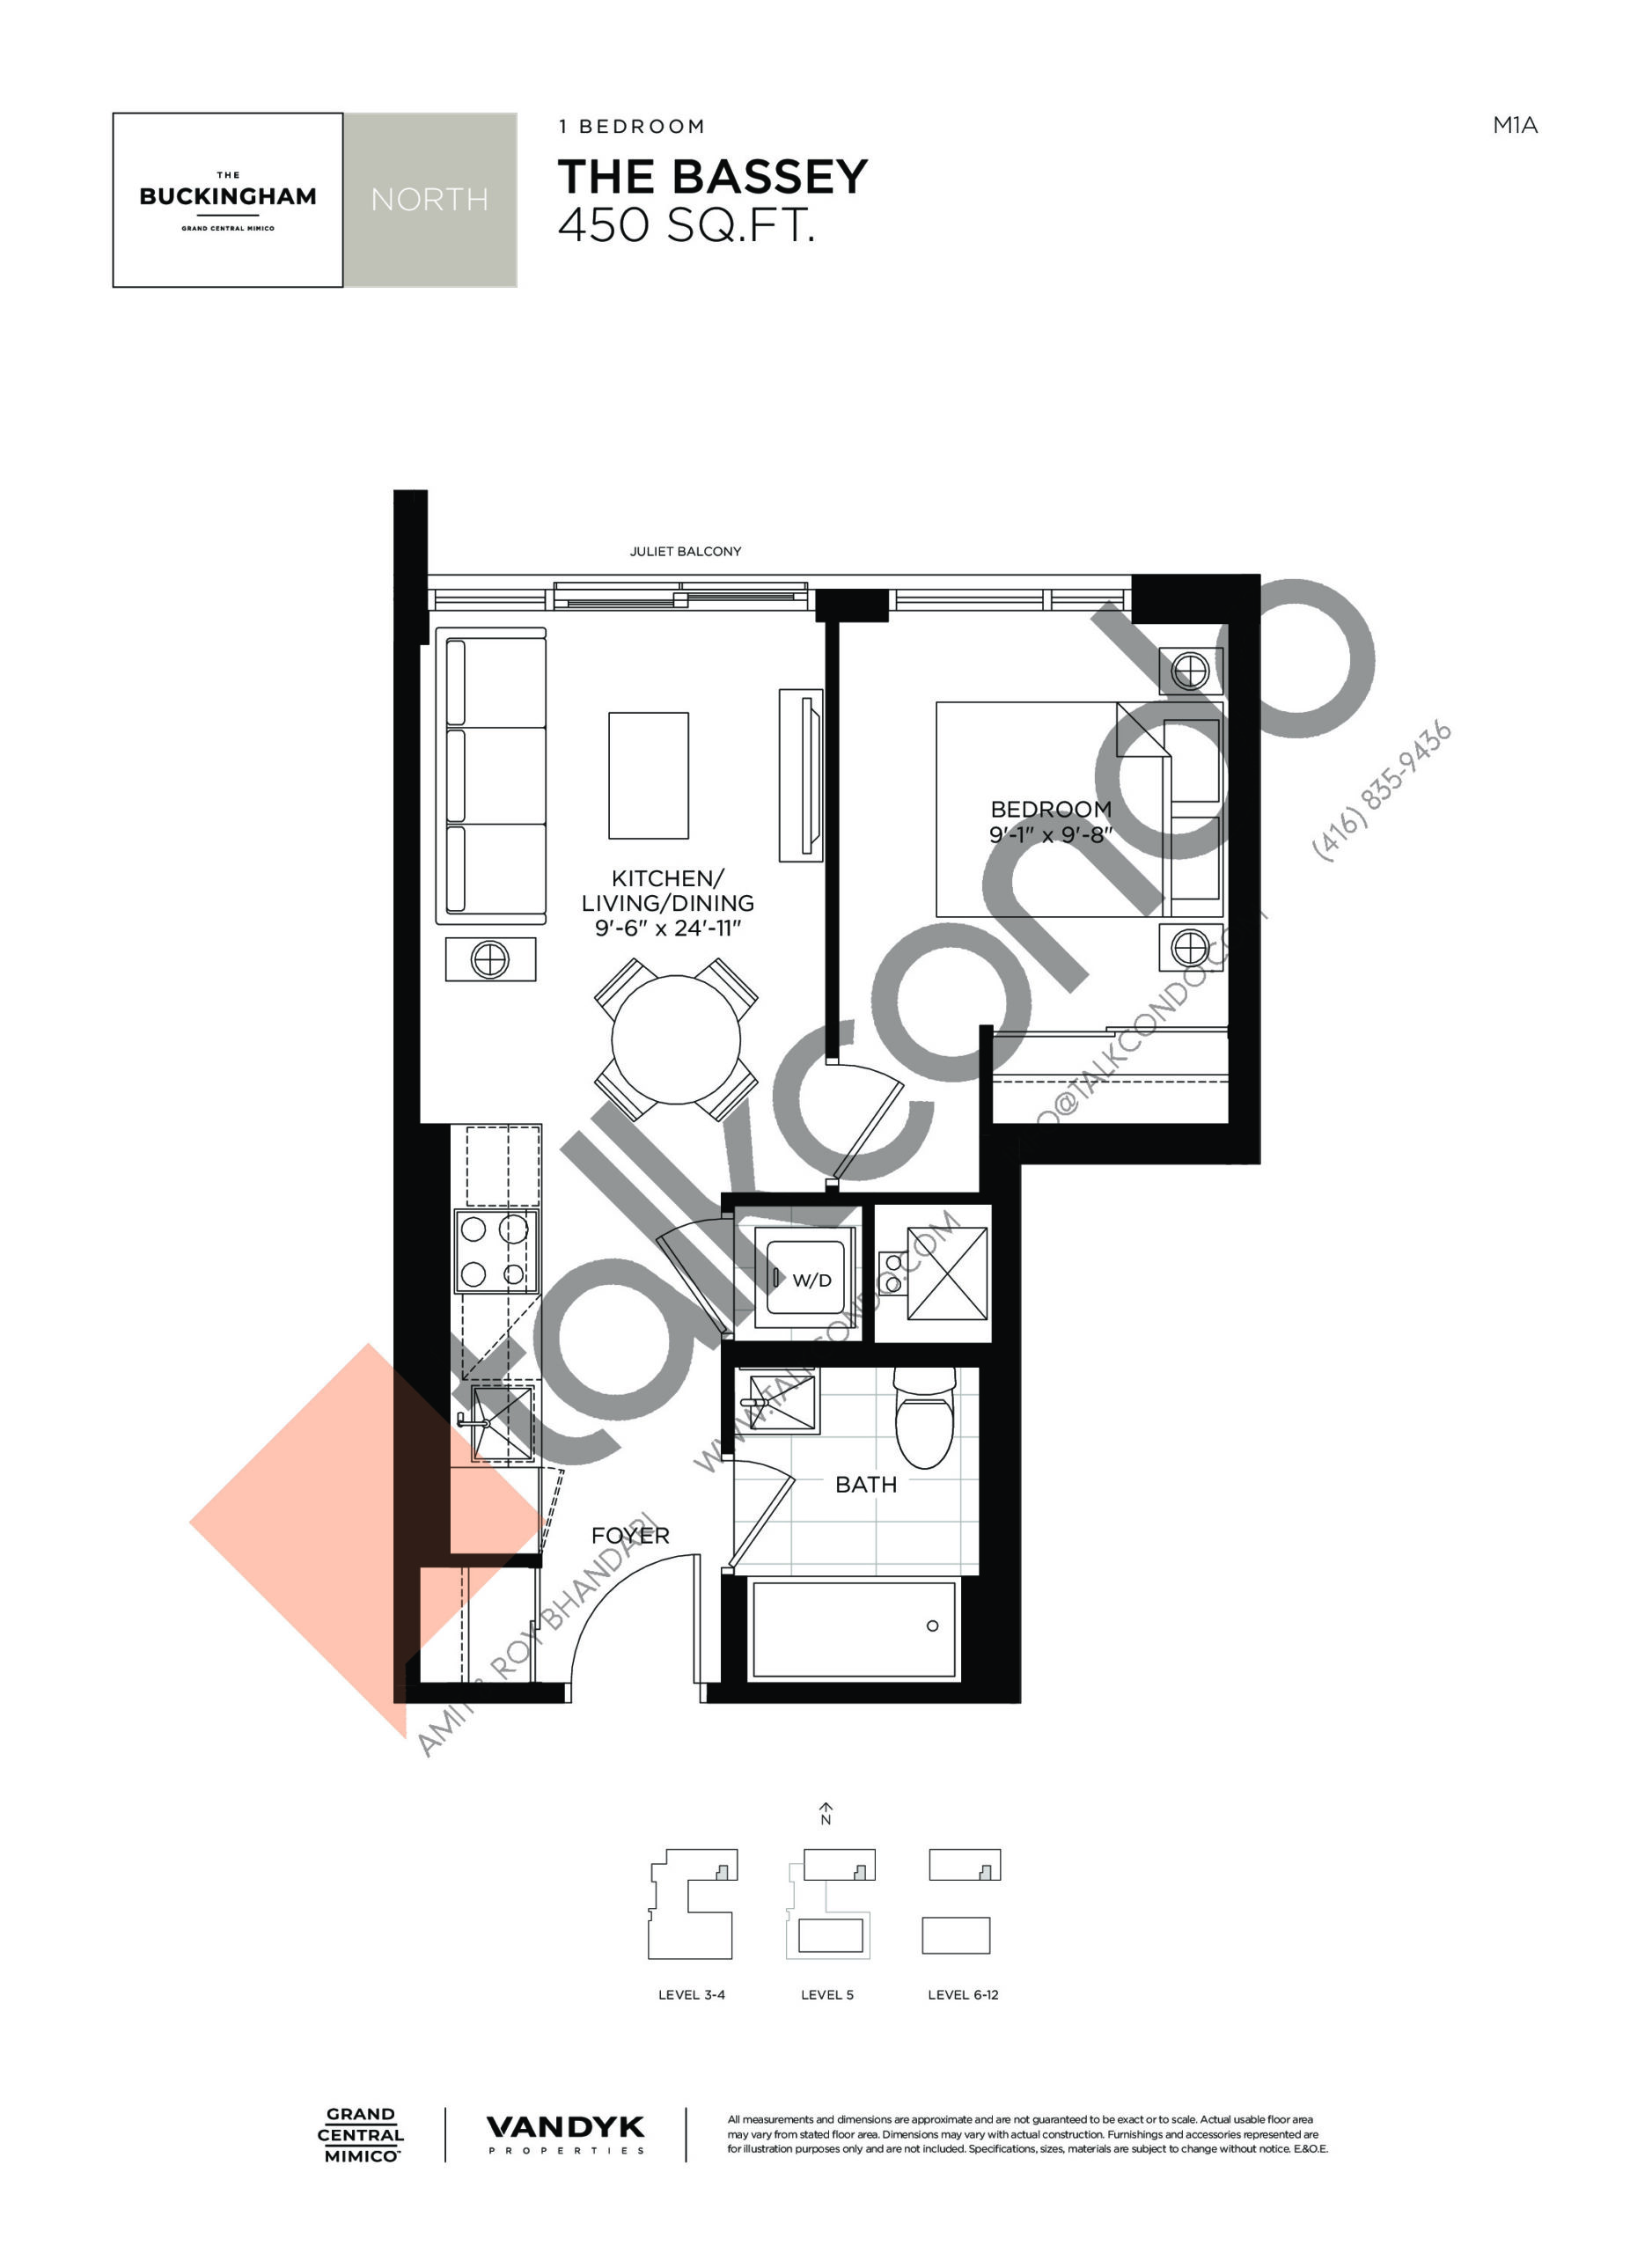 The Bassey Floor Plan at Grand Central Mimico Condos - 450 sq.ft